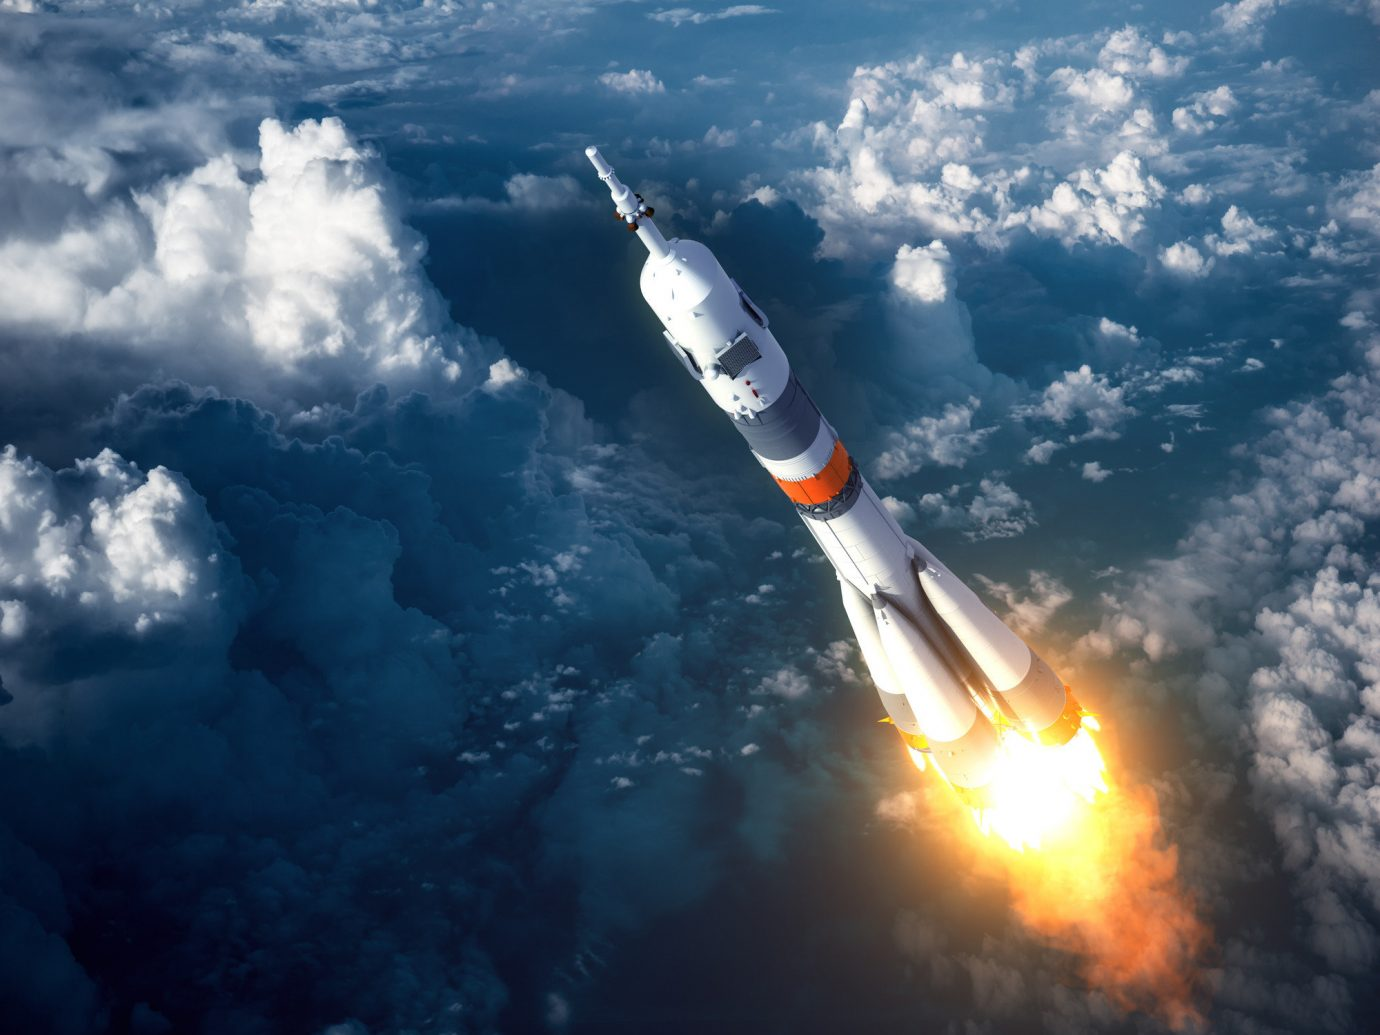 News outdoor sky clouds vehicle atmosphere atmosphere of earth aircraft transport rocket spacecraft flight aviation outer space missile cloudy day